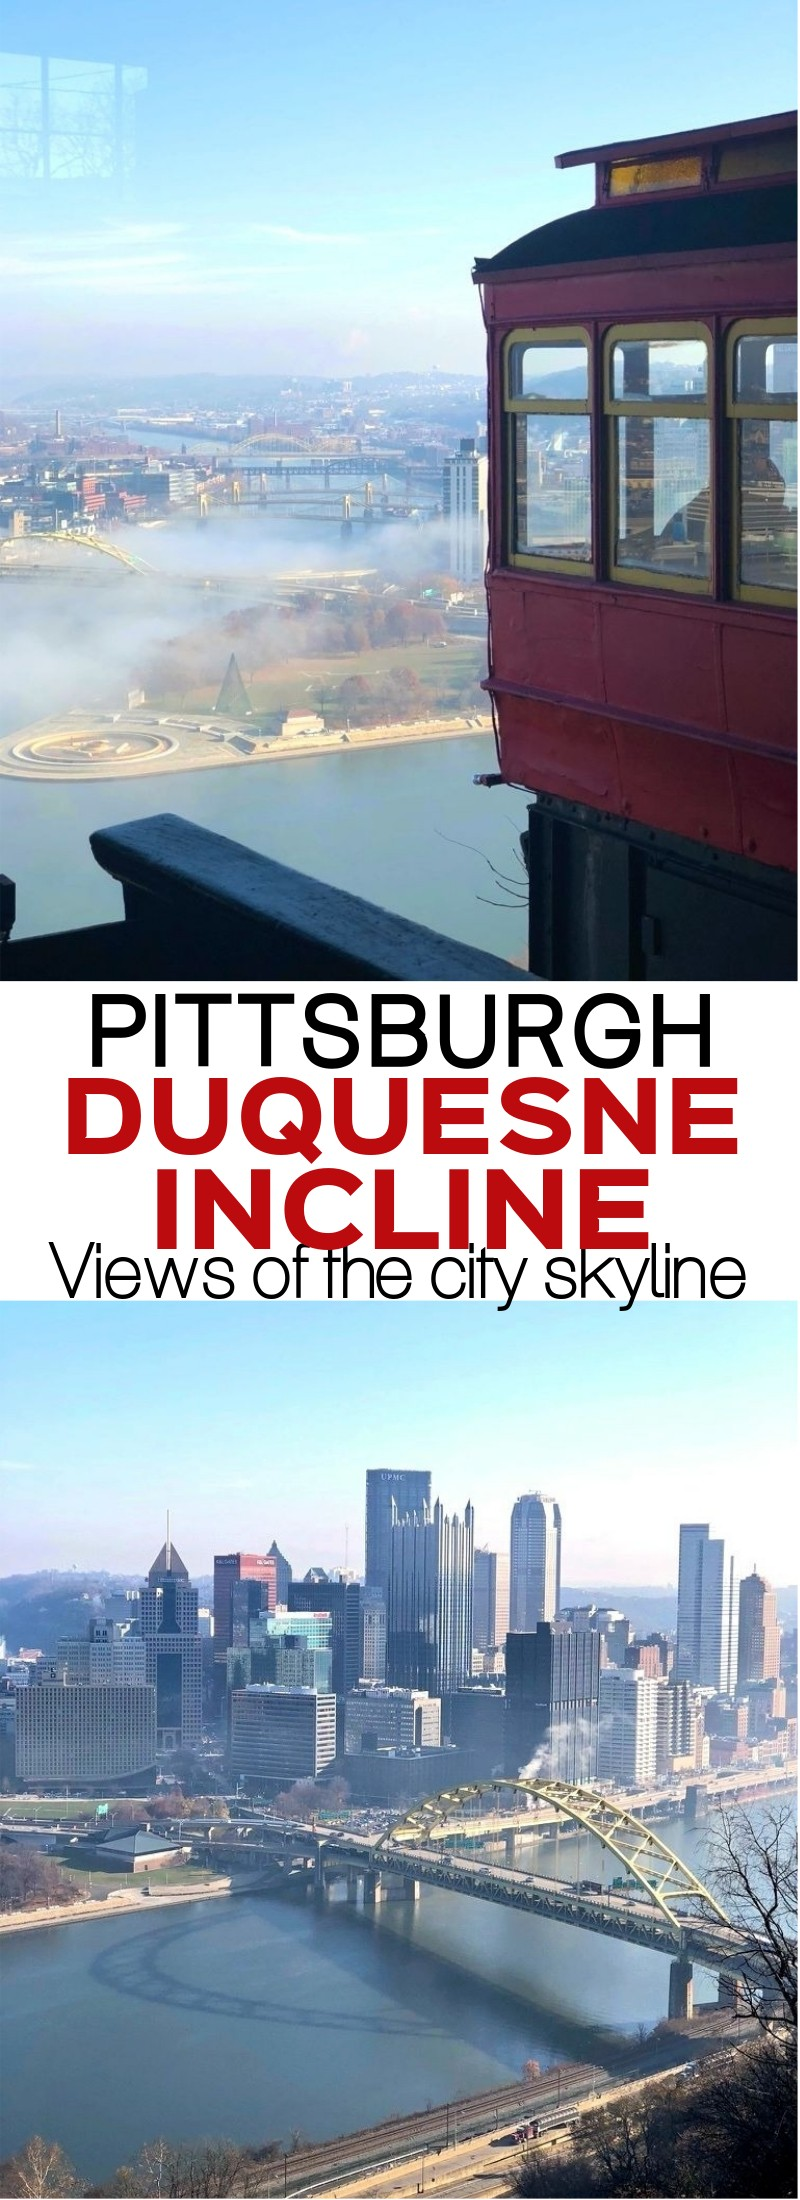 Ride Pittsburgh's Duquesne Incline - Fun Things To Do In Pittsburgh With Kids and Families! | Duquesne Incline Pittsburgh, Duquesne Incline pictures | must see things in Pittsburgh | Pittsburgh PA attractions | honeyandlime.co